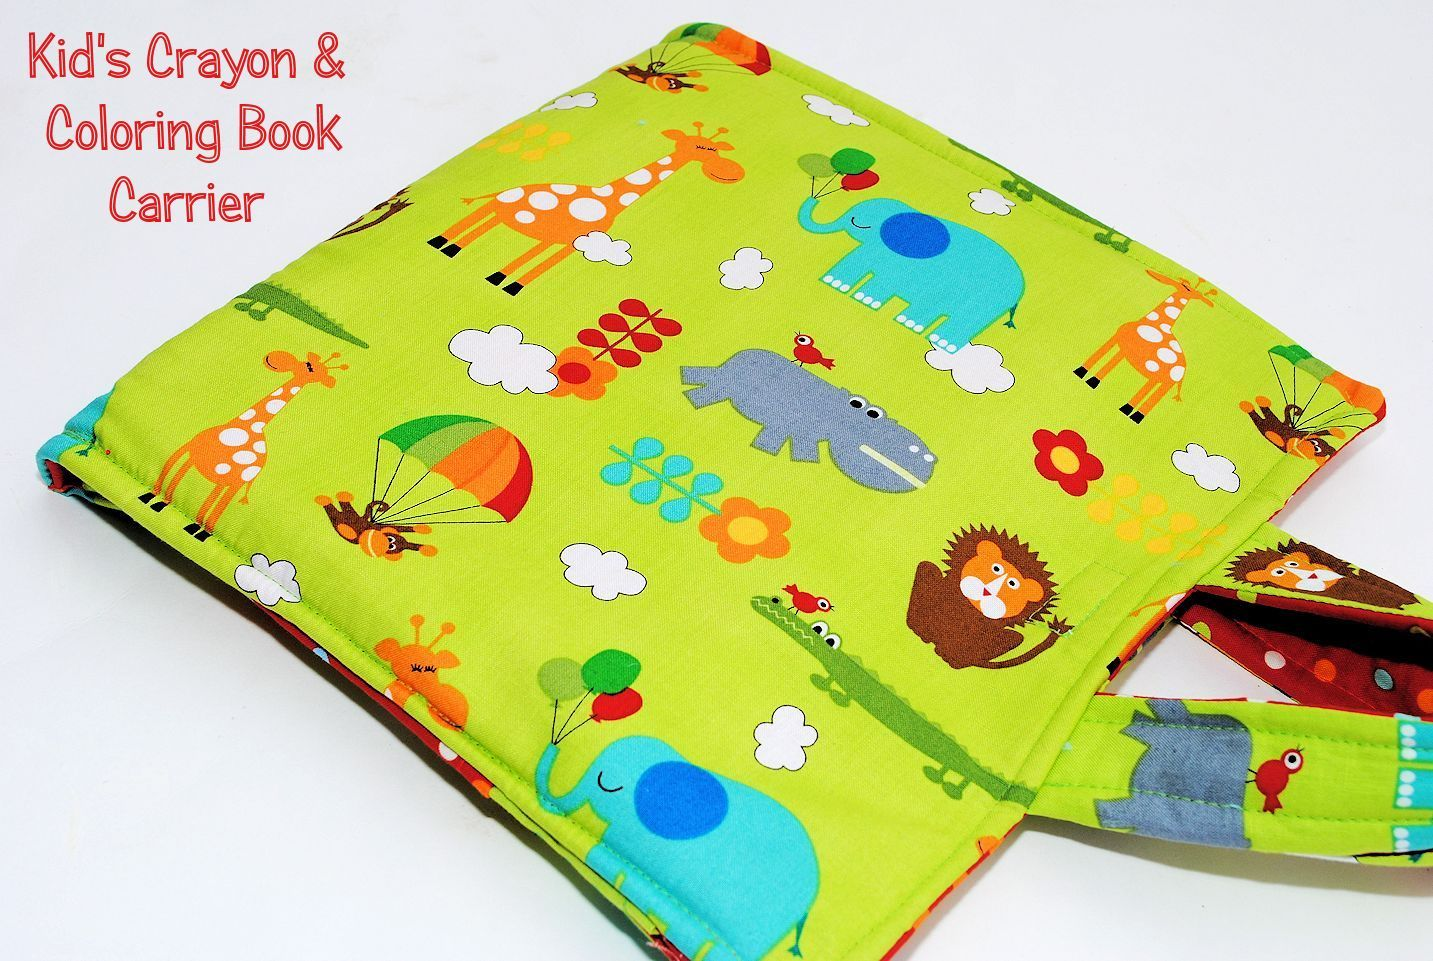 Ladybug Hooded Towel Pattern Sewing Projects For Kids Crayon Holder Crayon Book